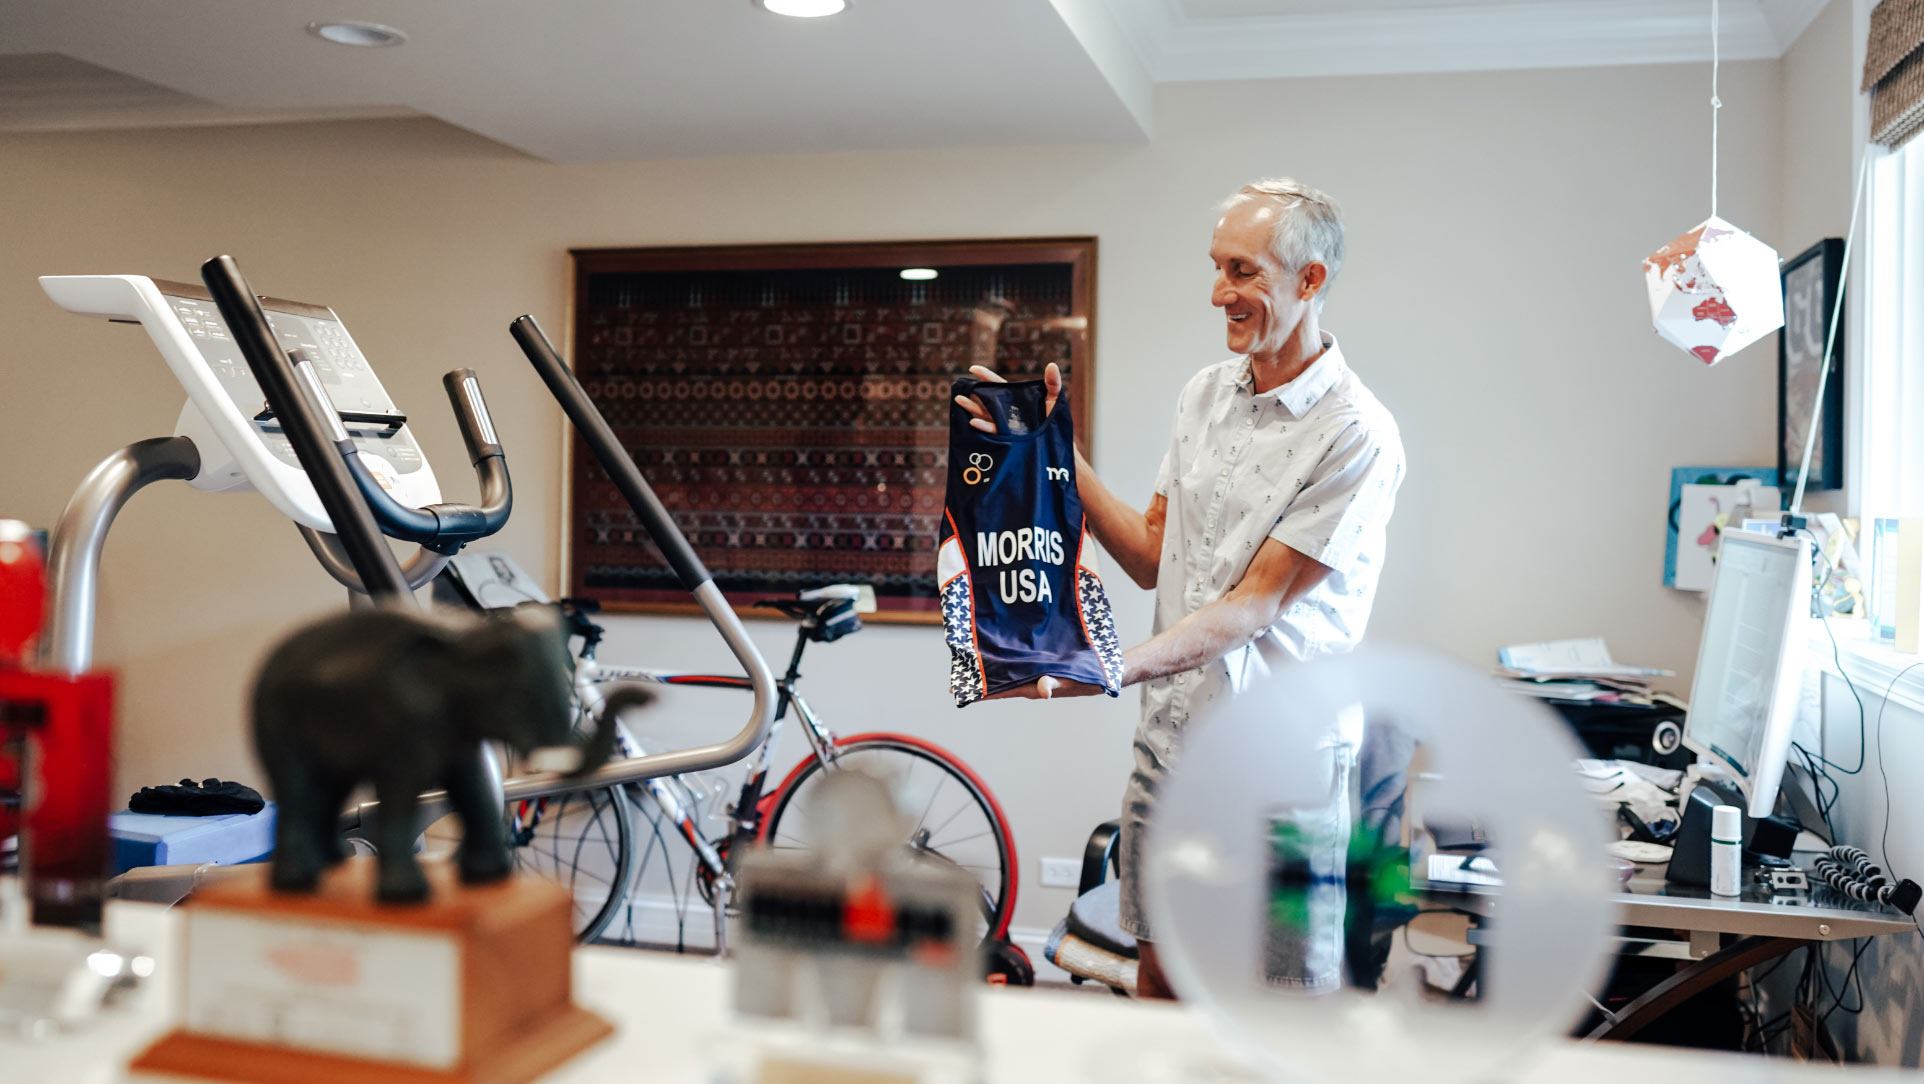 Doug, wearing a white button-down, smiles as he holds up a cycling jersey that says MORRIS USA. He is inside his home, in a space with a bike and some workout equipment.